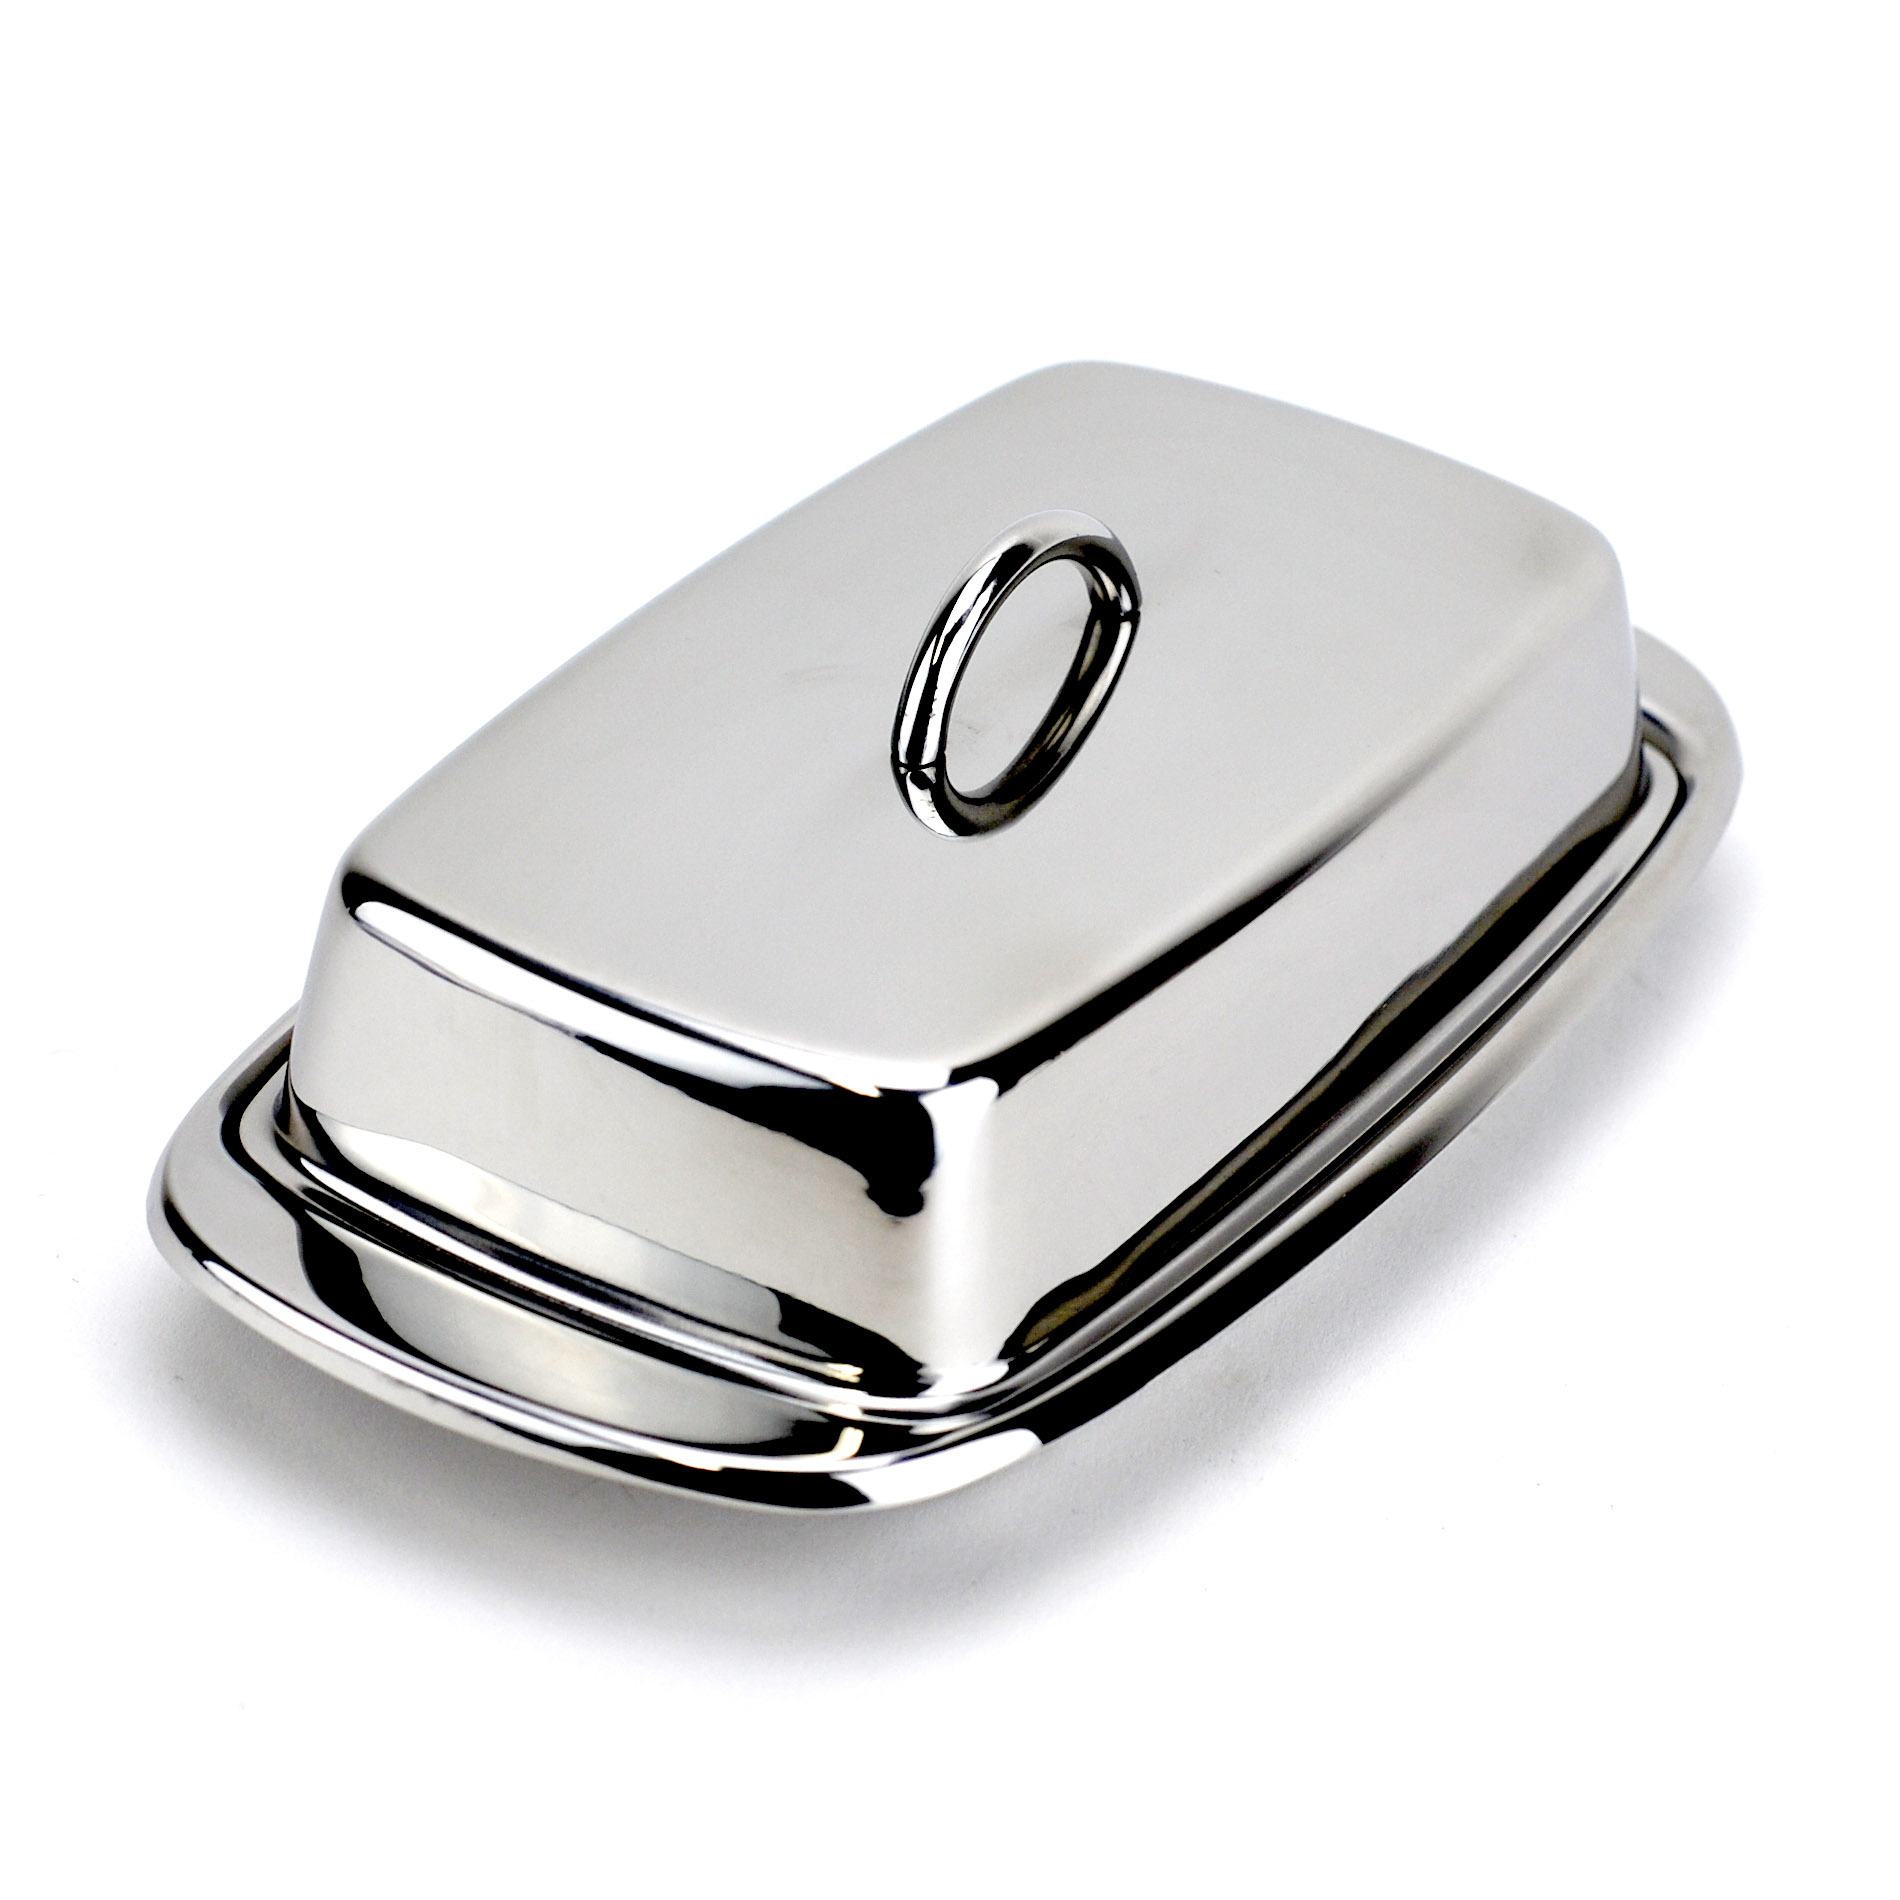 Butter Dish, Cute Stainless Steel Covered Butter Dish with Handle Lid, Silver